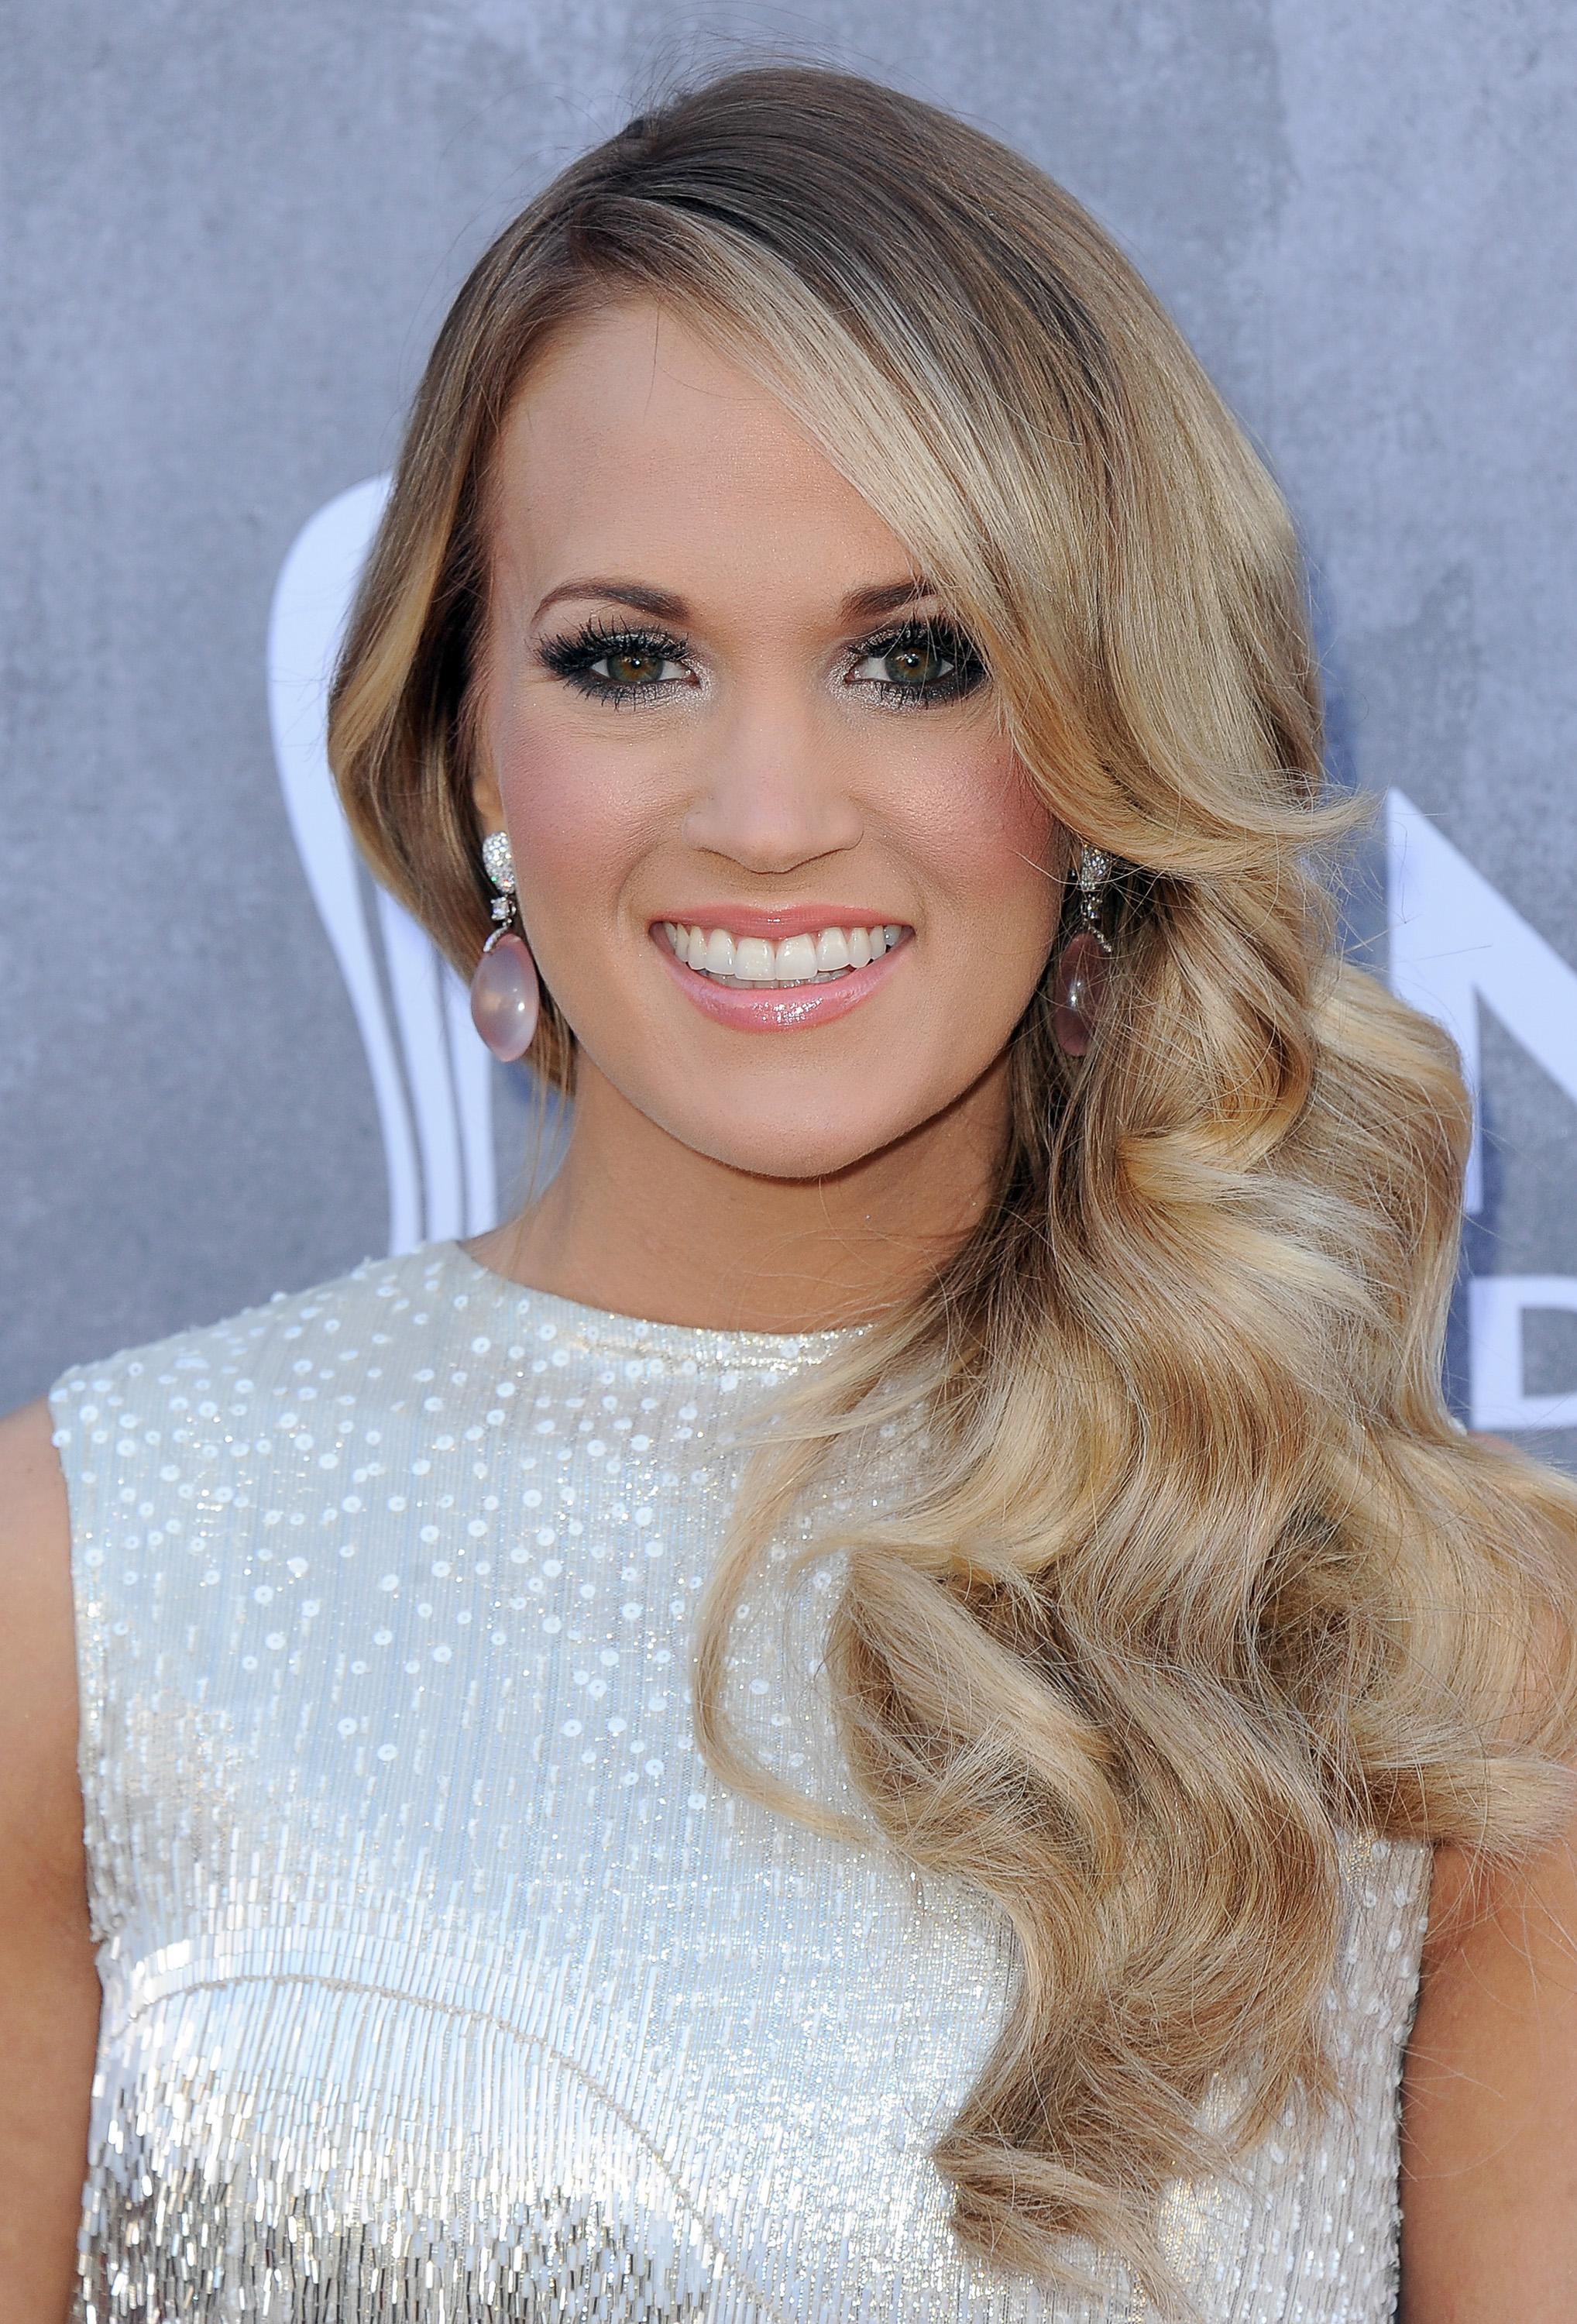 9. Carrie Underwood